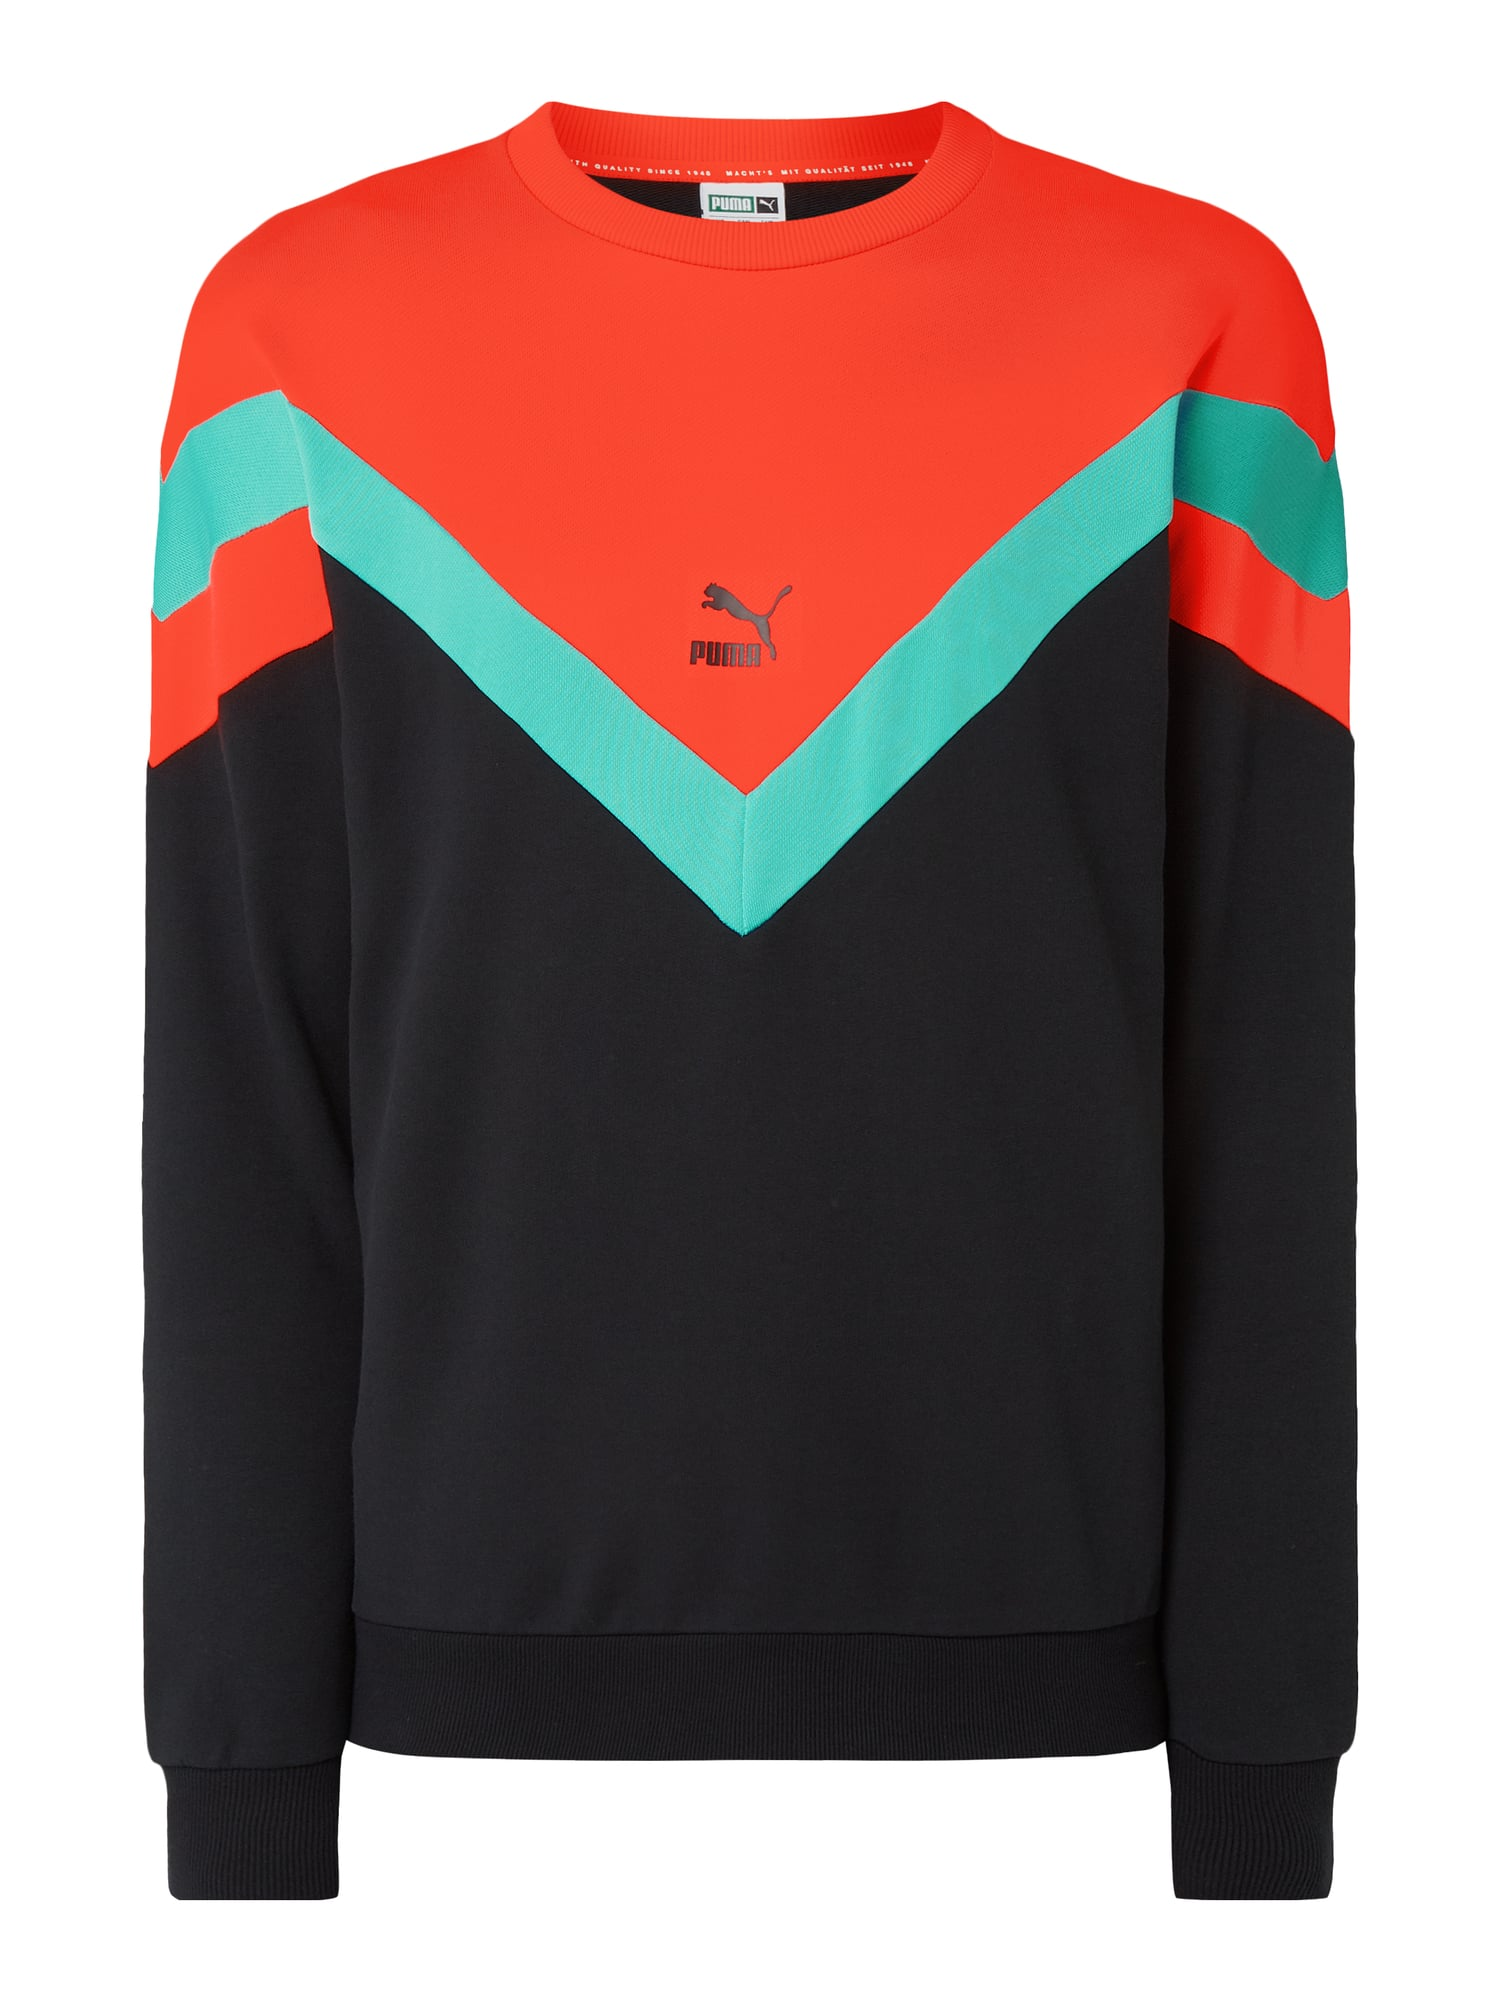 PUMA PERFORMANCE Sweatshirt im dreifarbigen Design in Orange online kaufen (4021632) ▷ P&C Online Shop